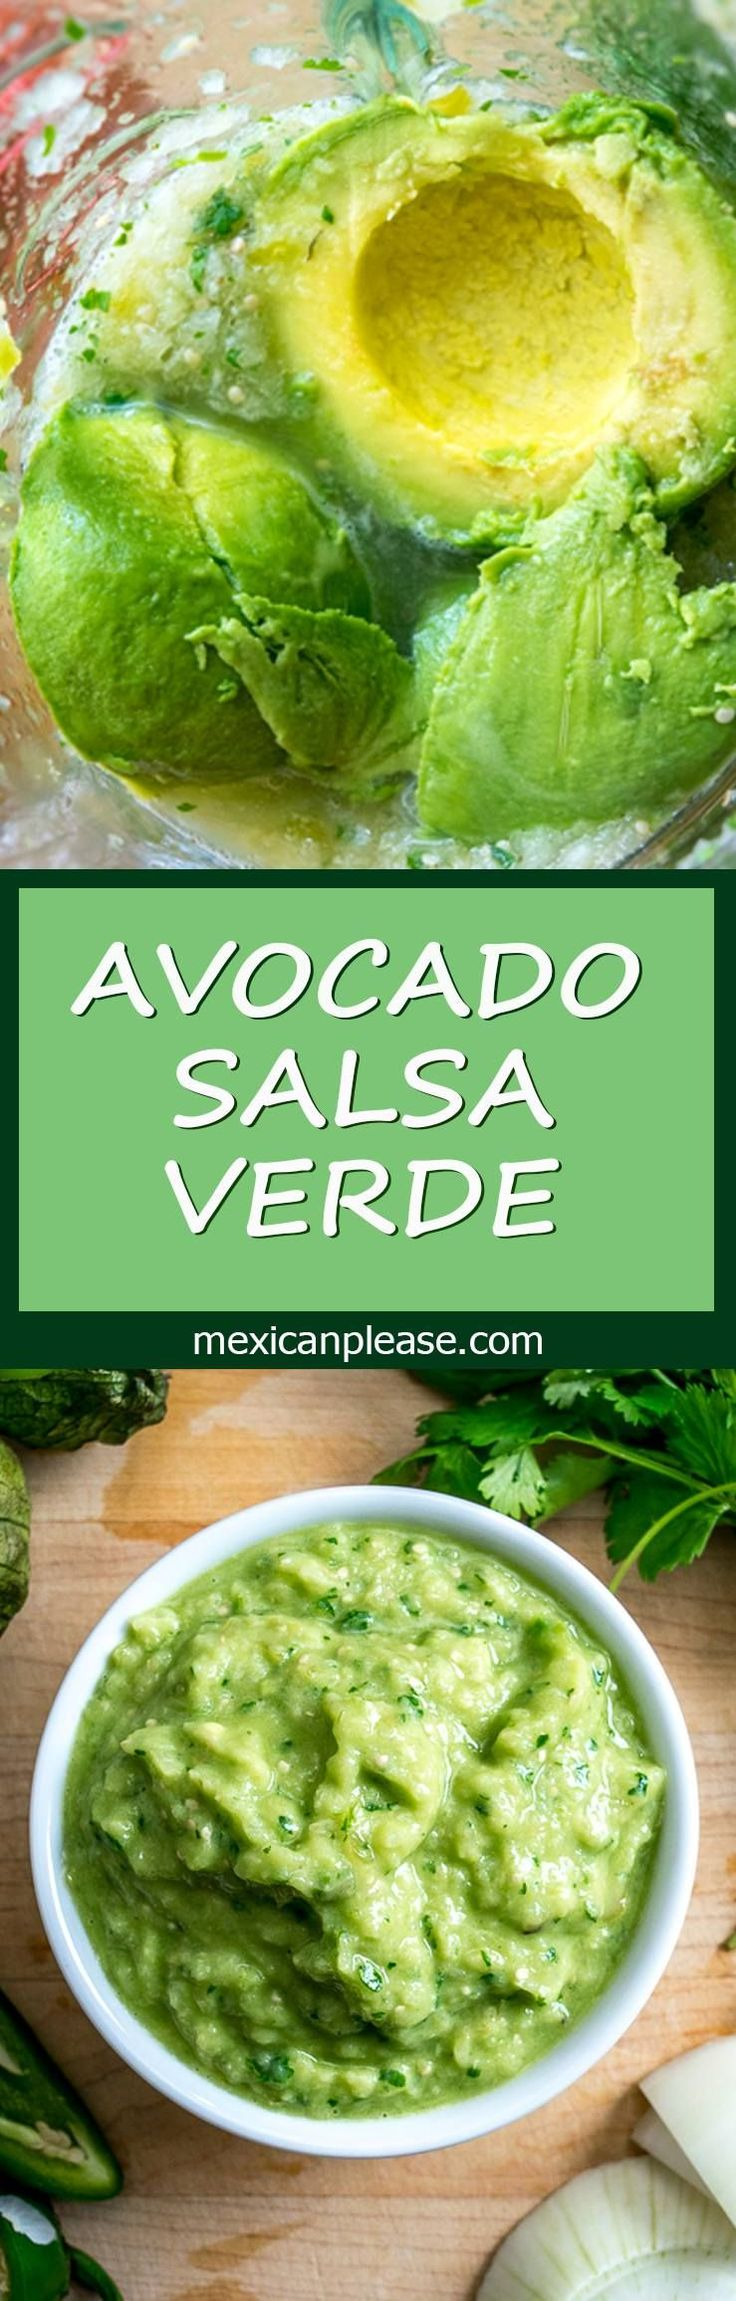 Avocado Salsa Verde has one of the best flavor-to-effort ratios in all of Mexican cuisine. You'll get incredible flavor from very little effort by using just a few key ingredients.  So good!  mexicanplease.com